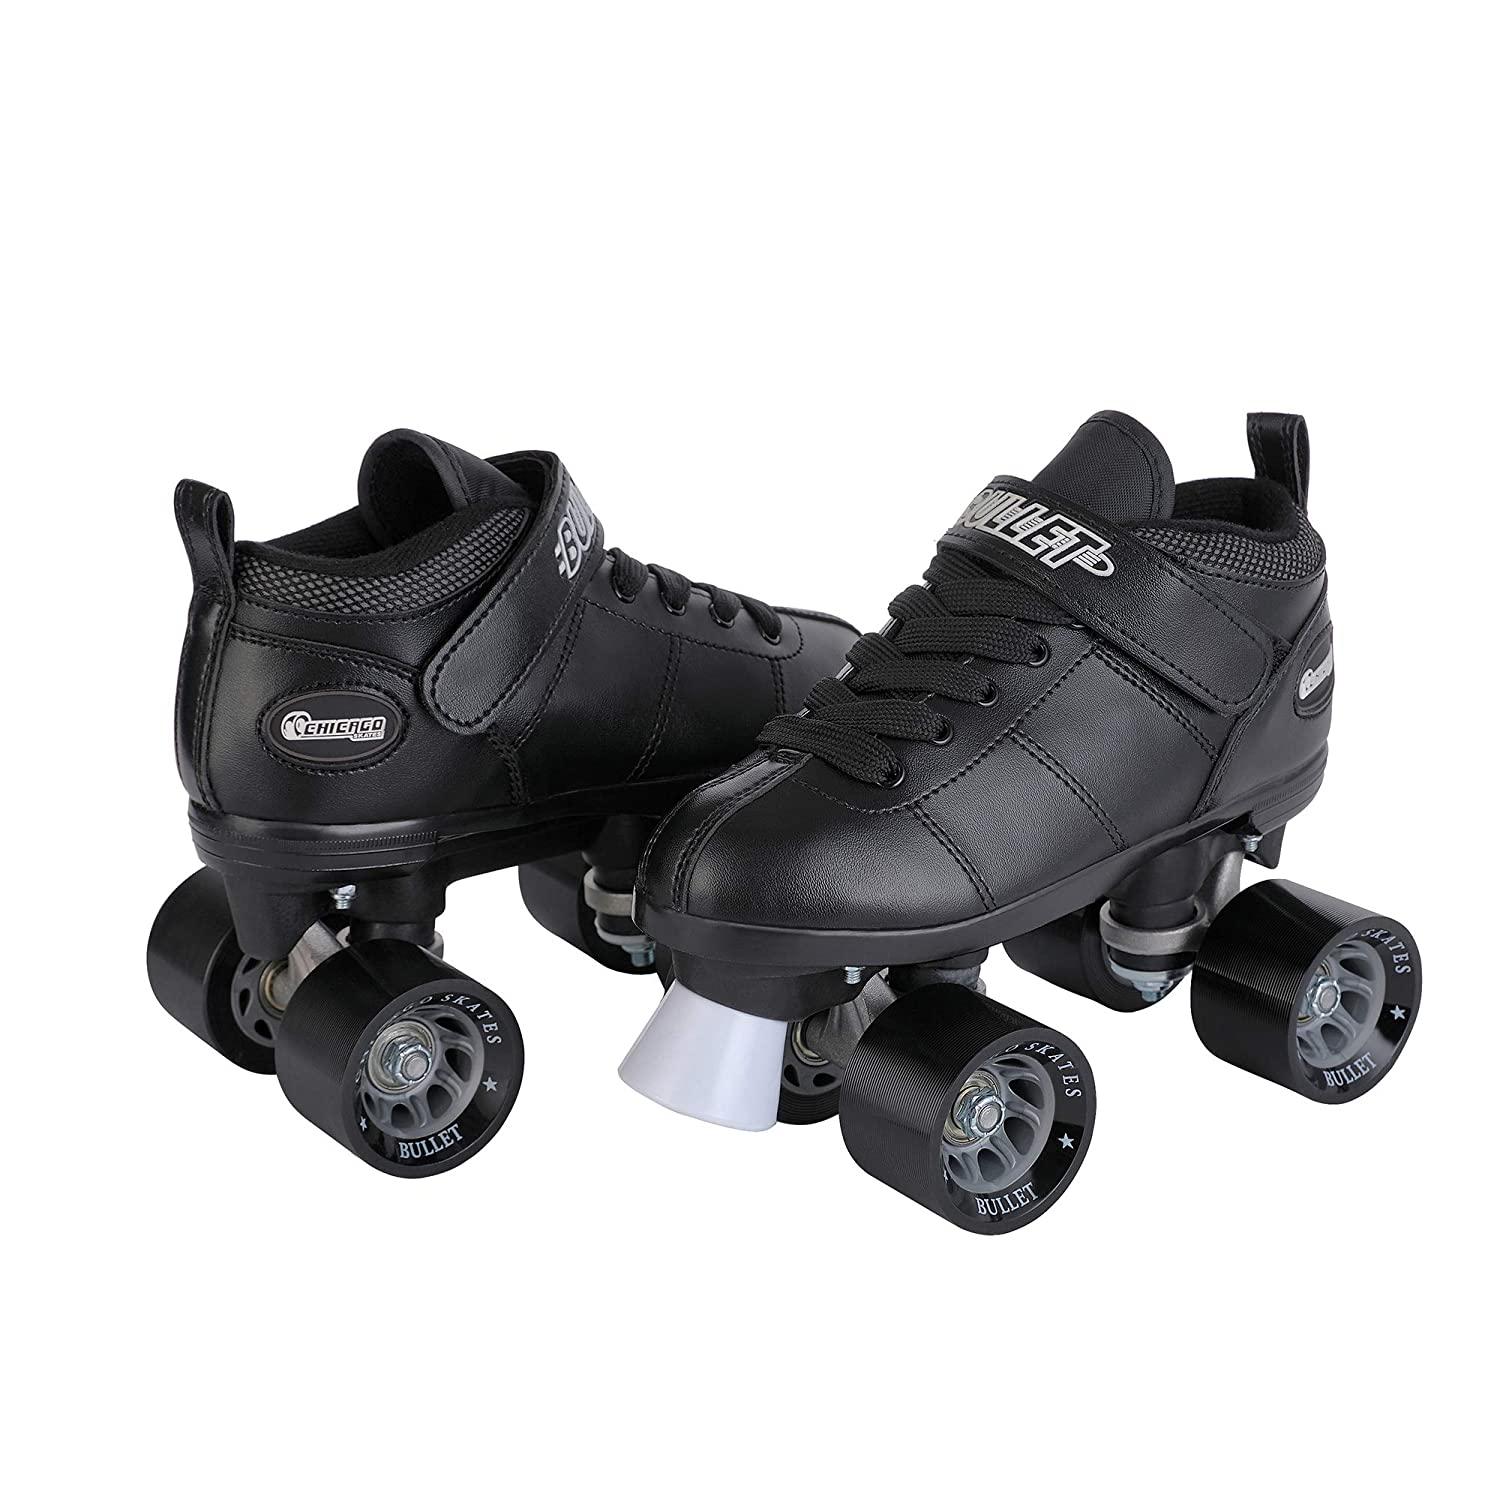 Chicago Bullet Men's Speed Roller Skate